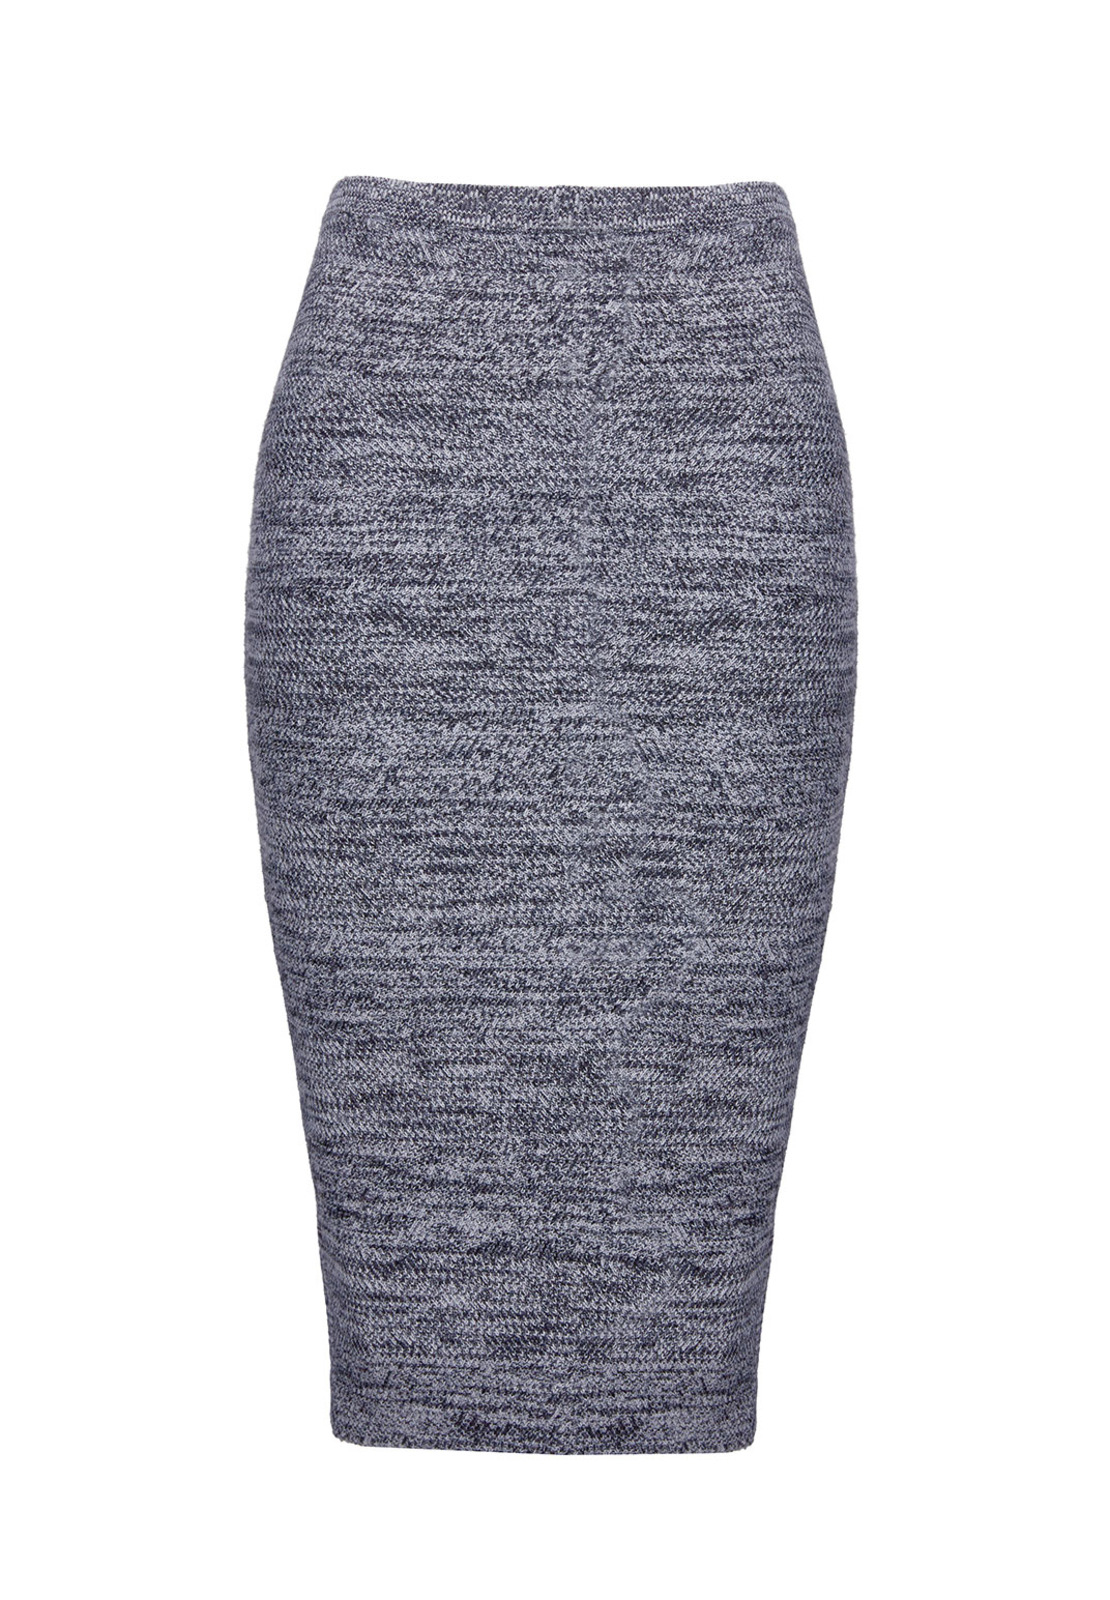 Alice   olivia Morena Herringbone Long Pencil Skirt in Blue | Lyst